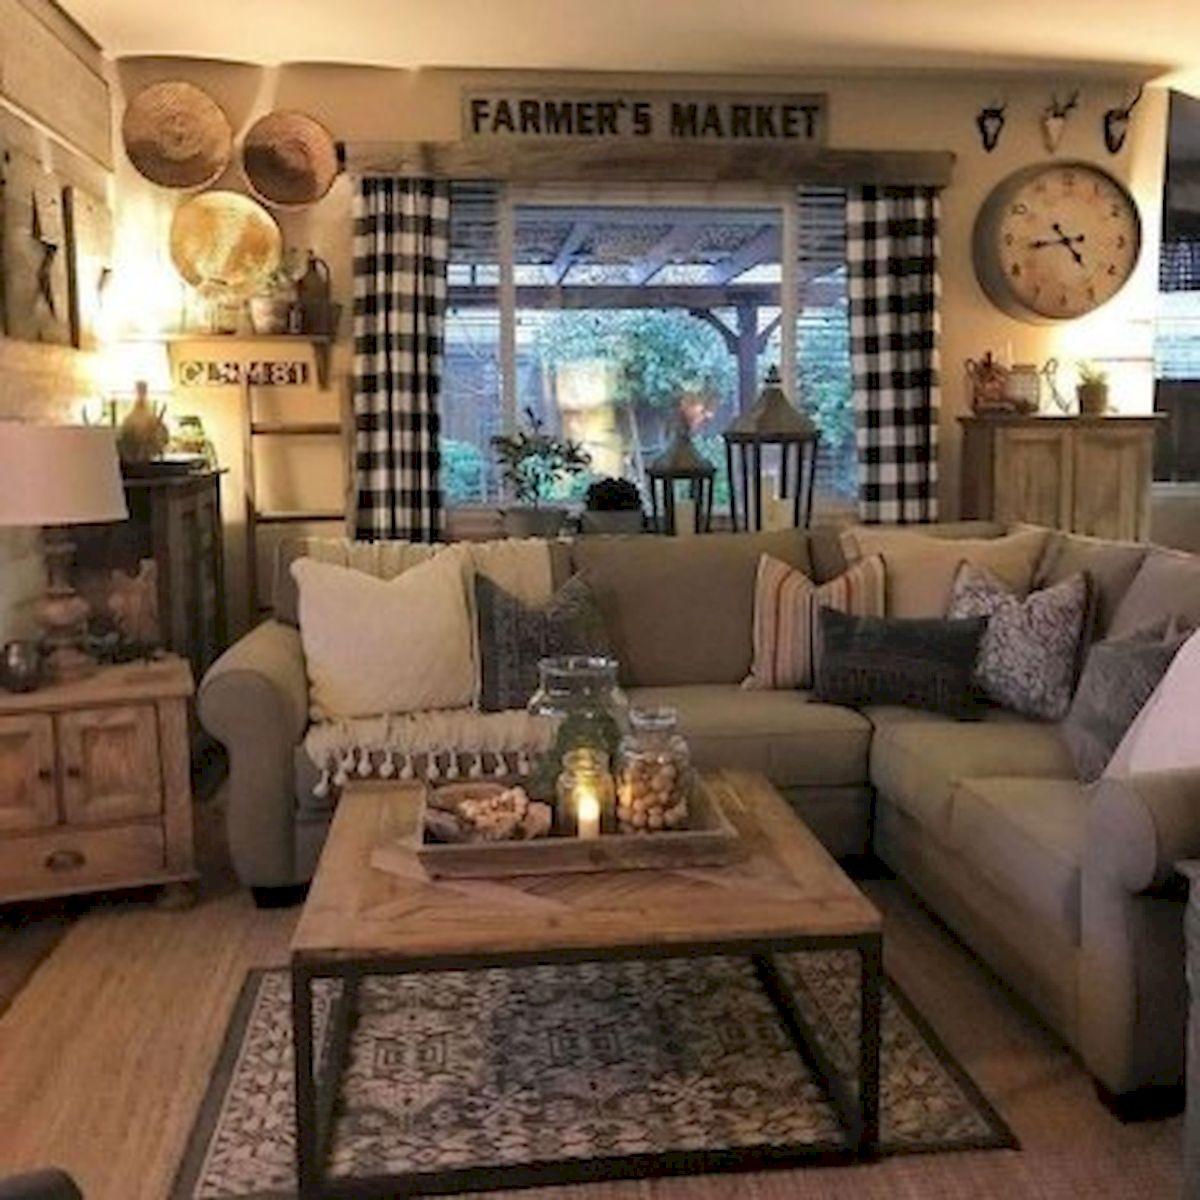 40+ Awesome Farmhouse Design Ideas For Living Room (7)